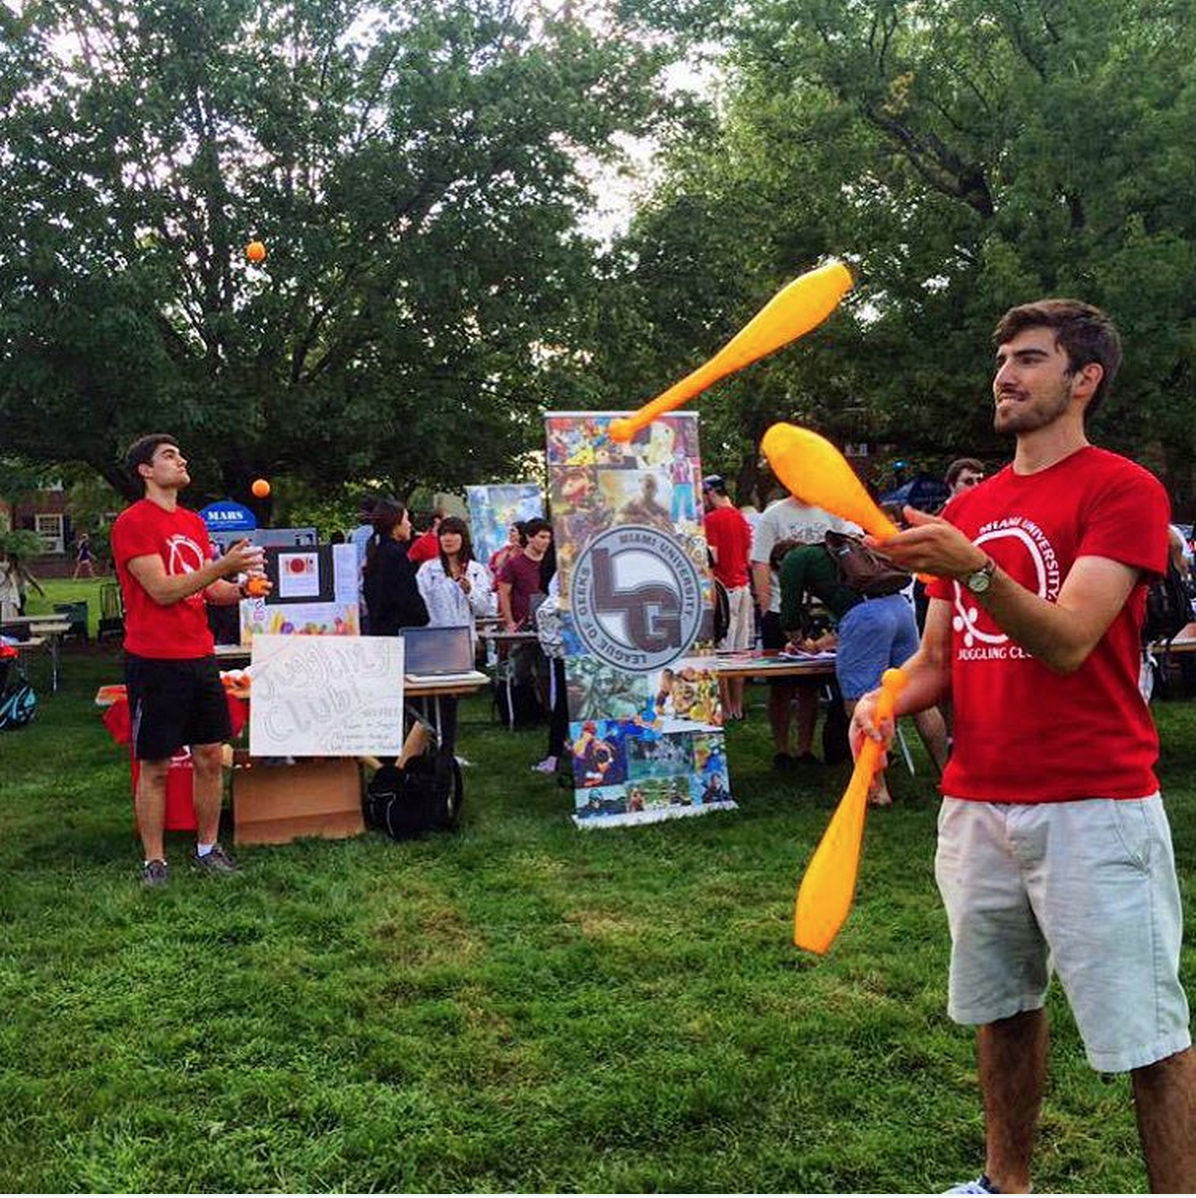 Two students from Miami's Juggling Club juggle during the Megafair event on campus.